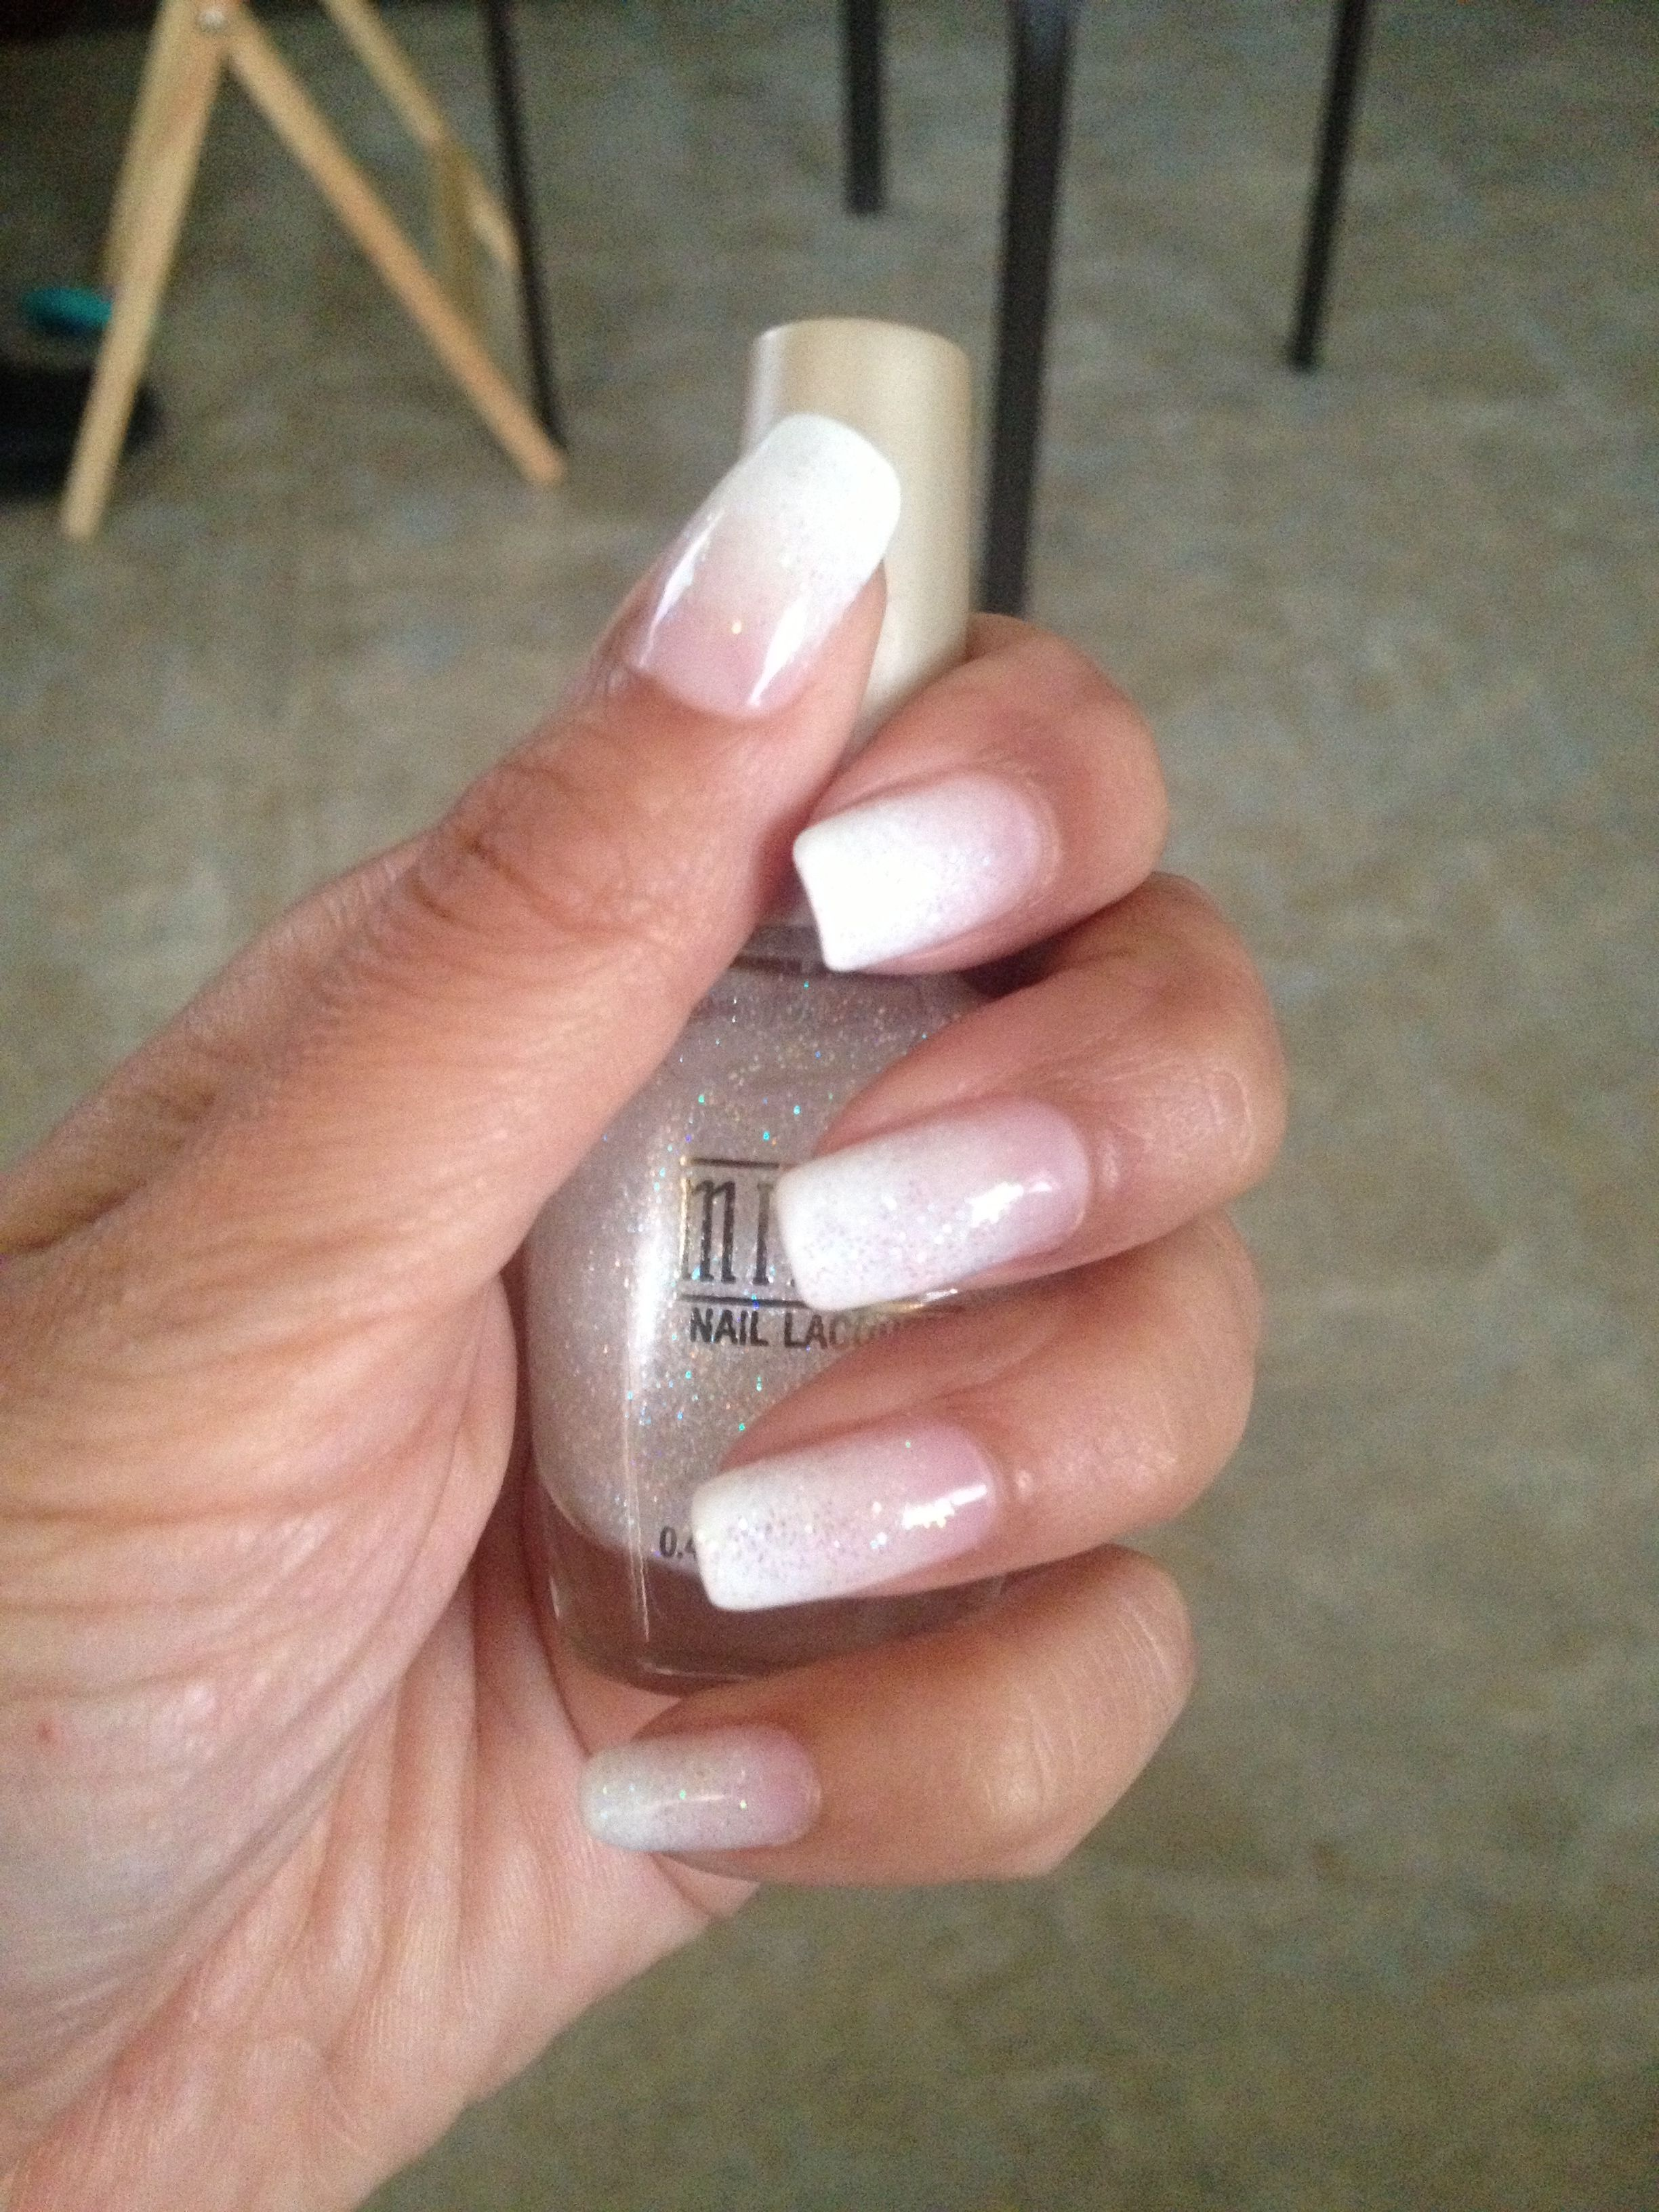 White Nail Polish Design Nail Designs Pinterest White Nail